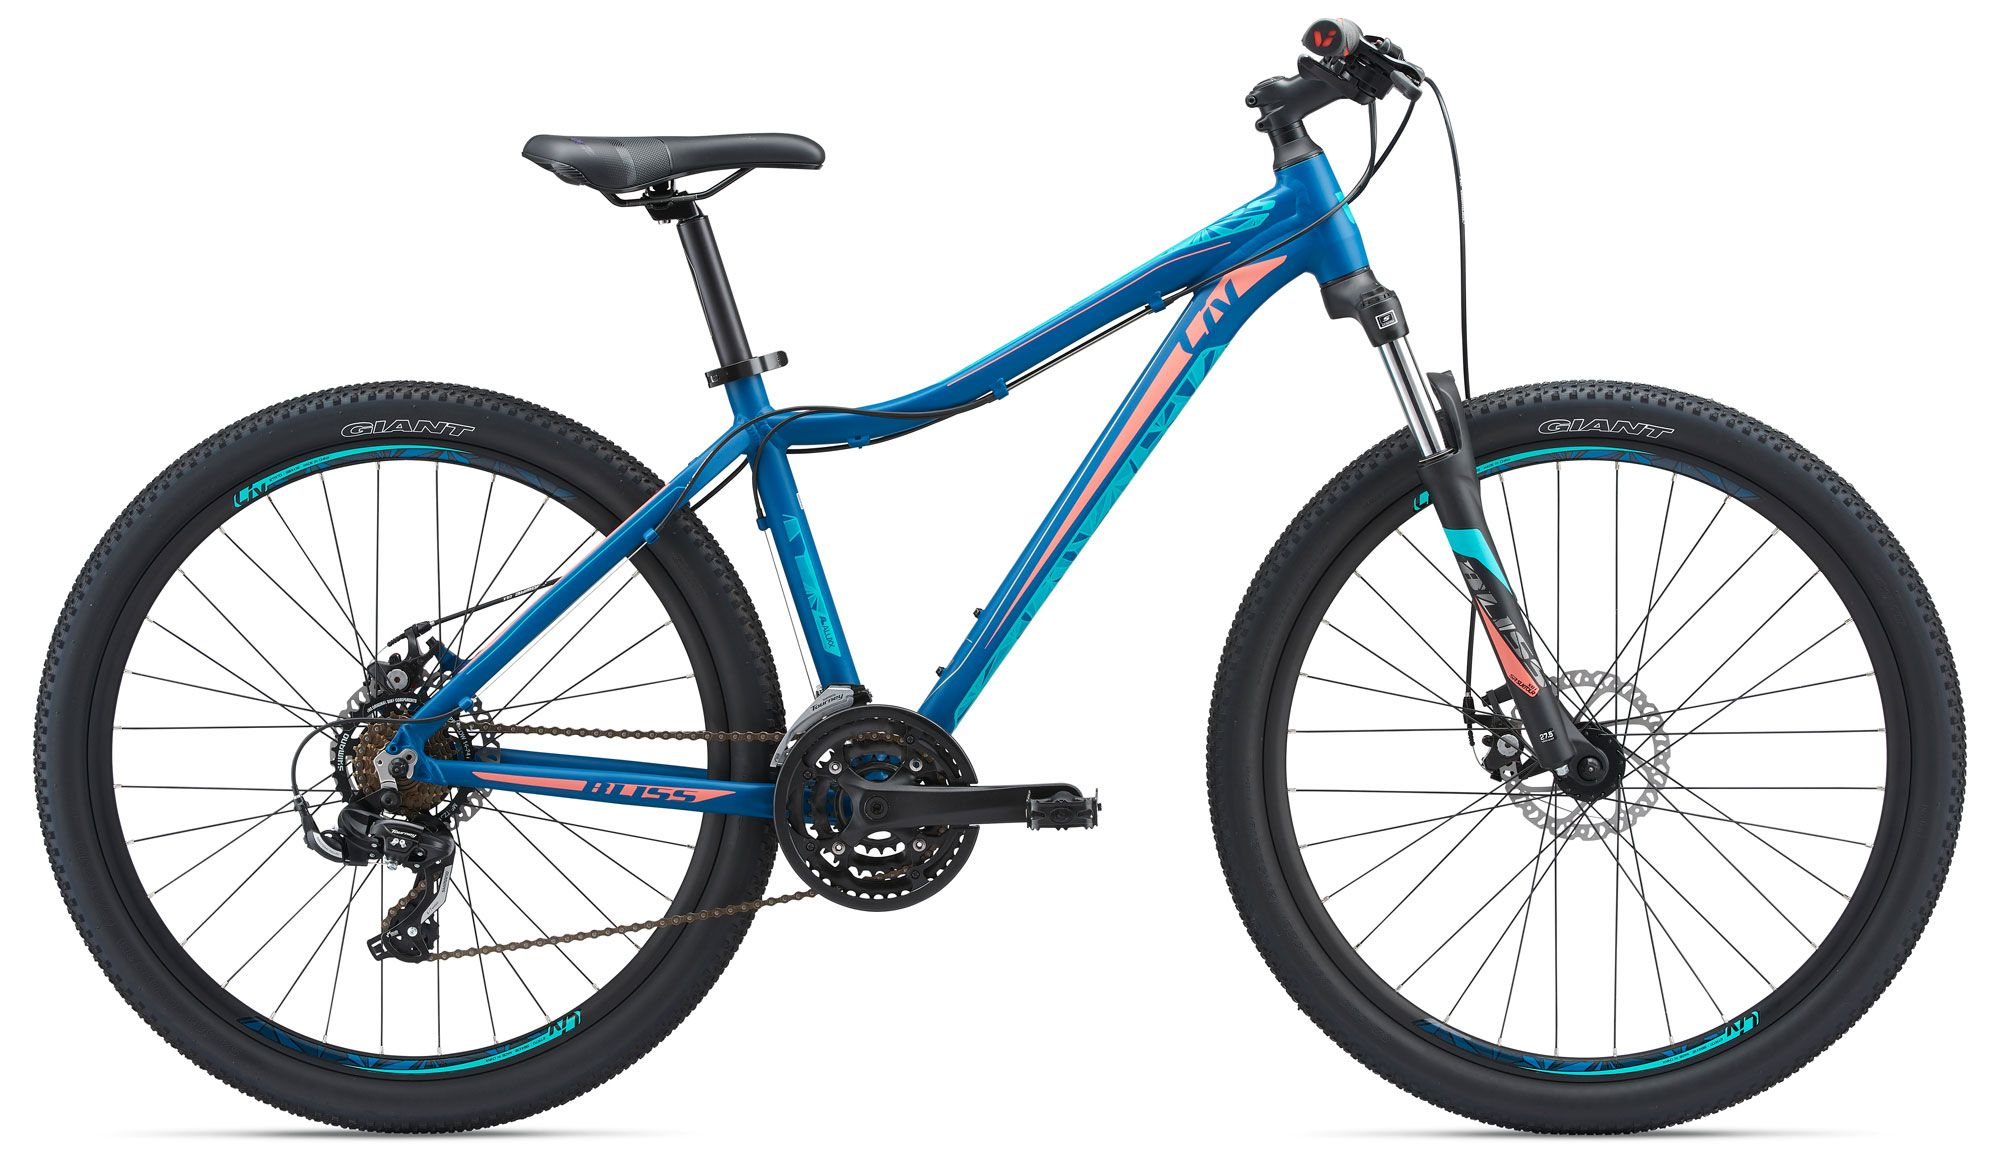 Велосипед Giant Bliss 2 2018 велосипед giant talon 29er 2 blk 2014